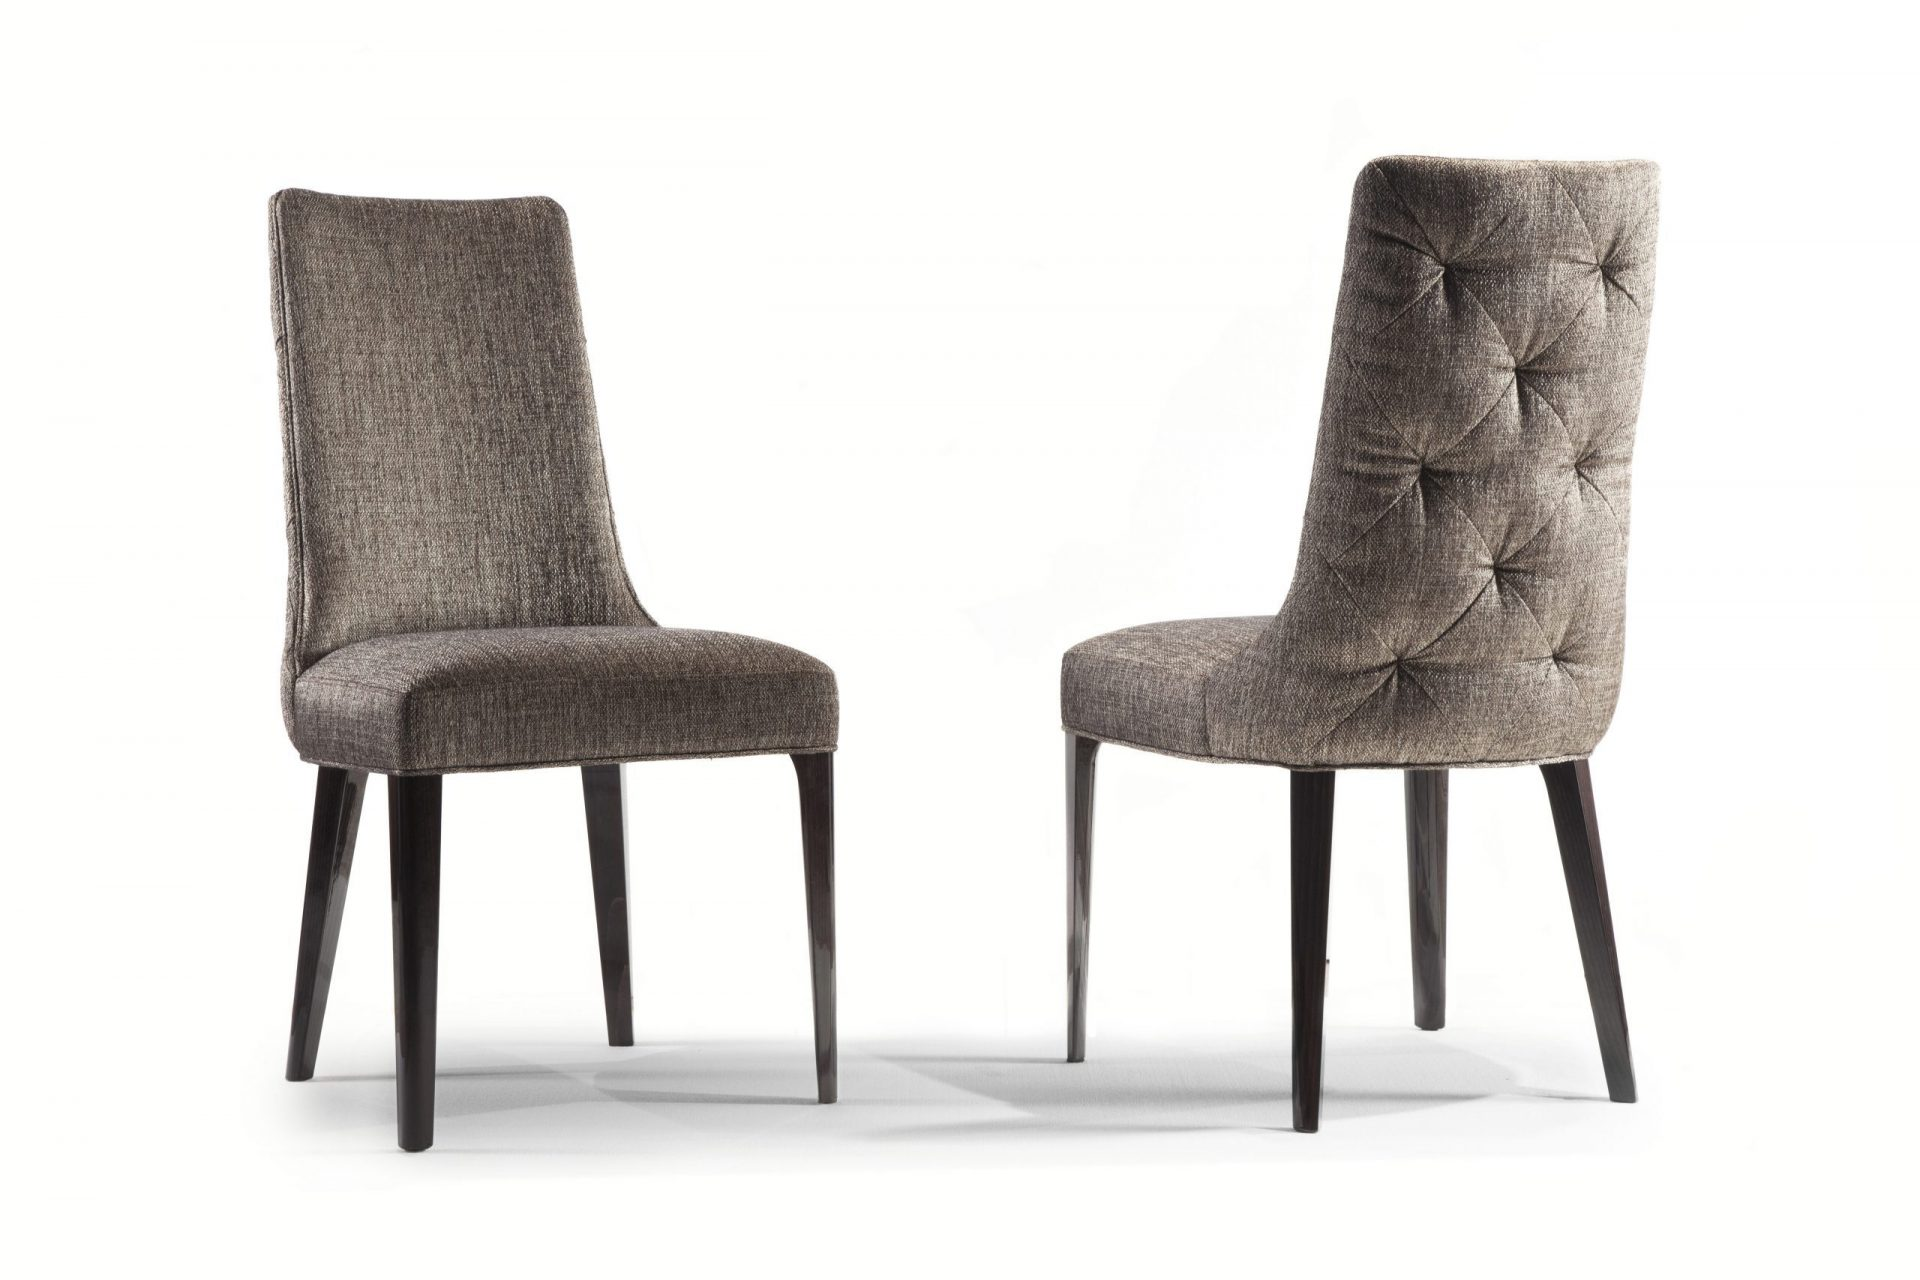 Mitto Dining Chairs